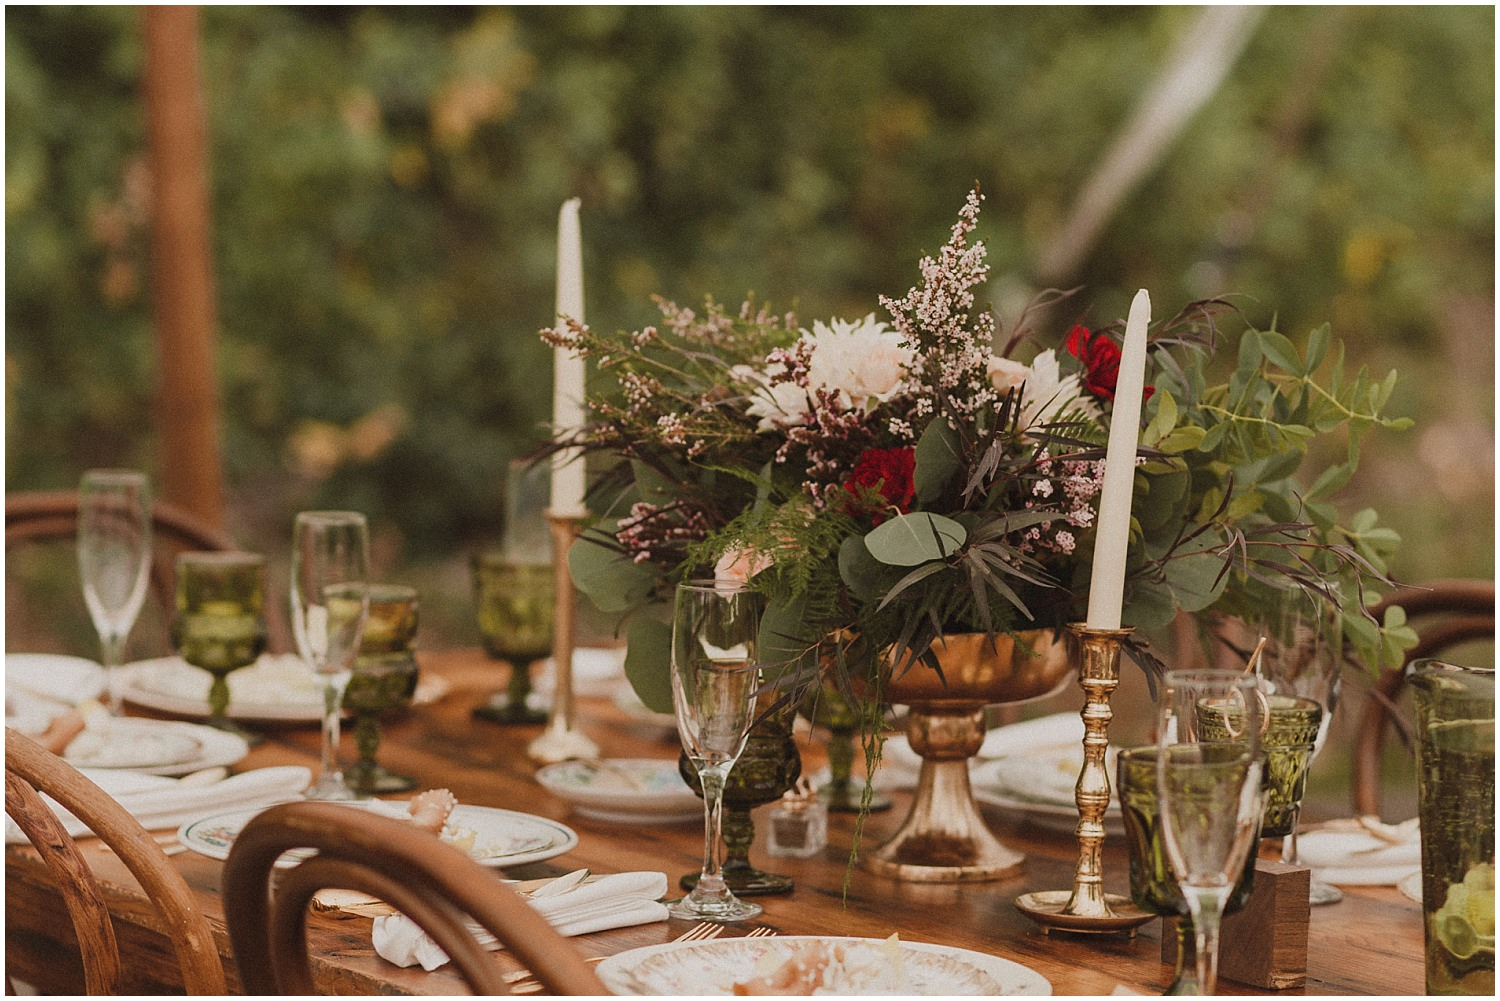 bouquet sitting on reception table